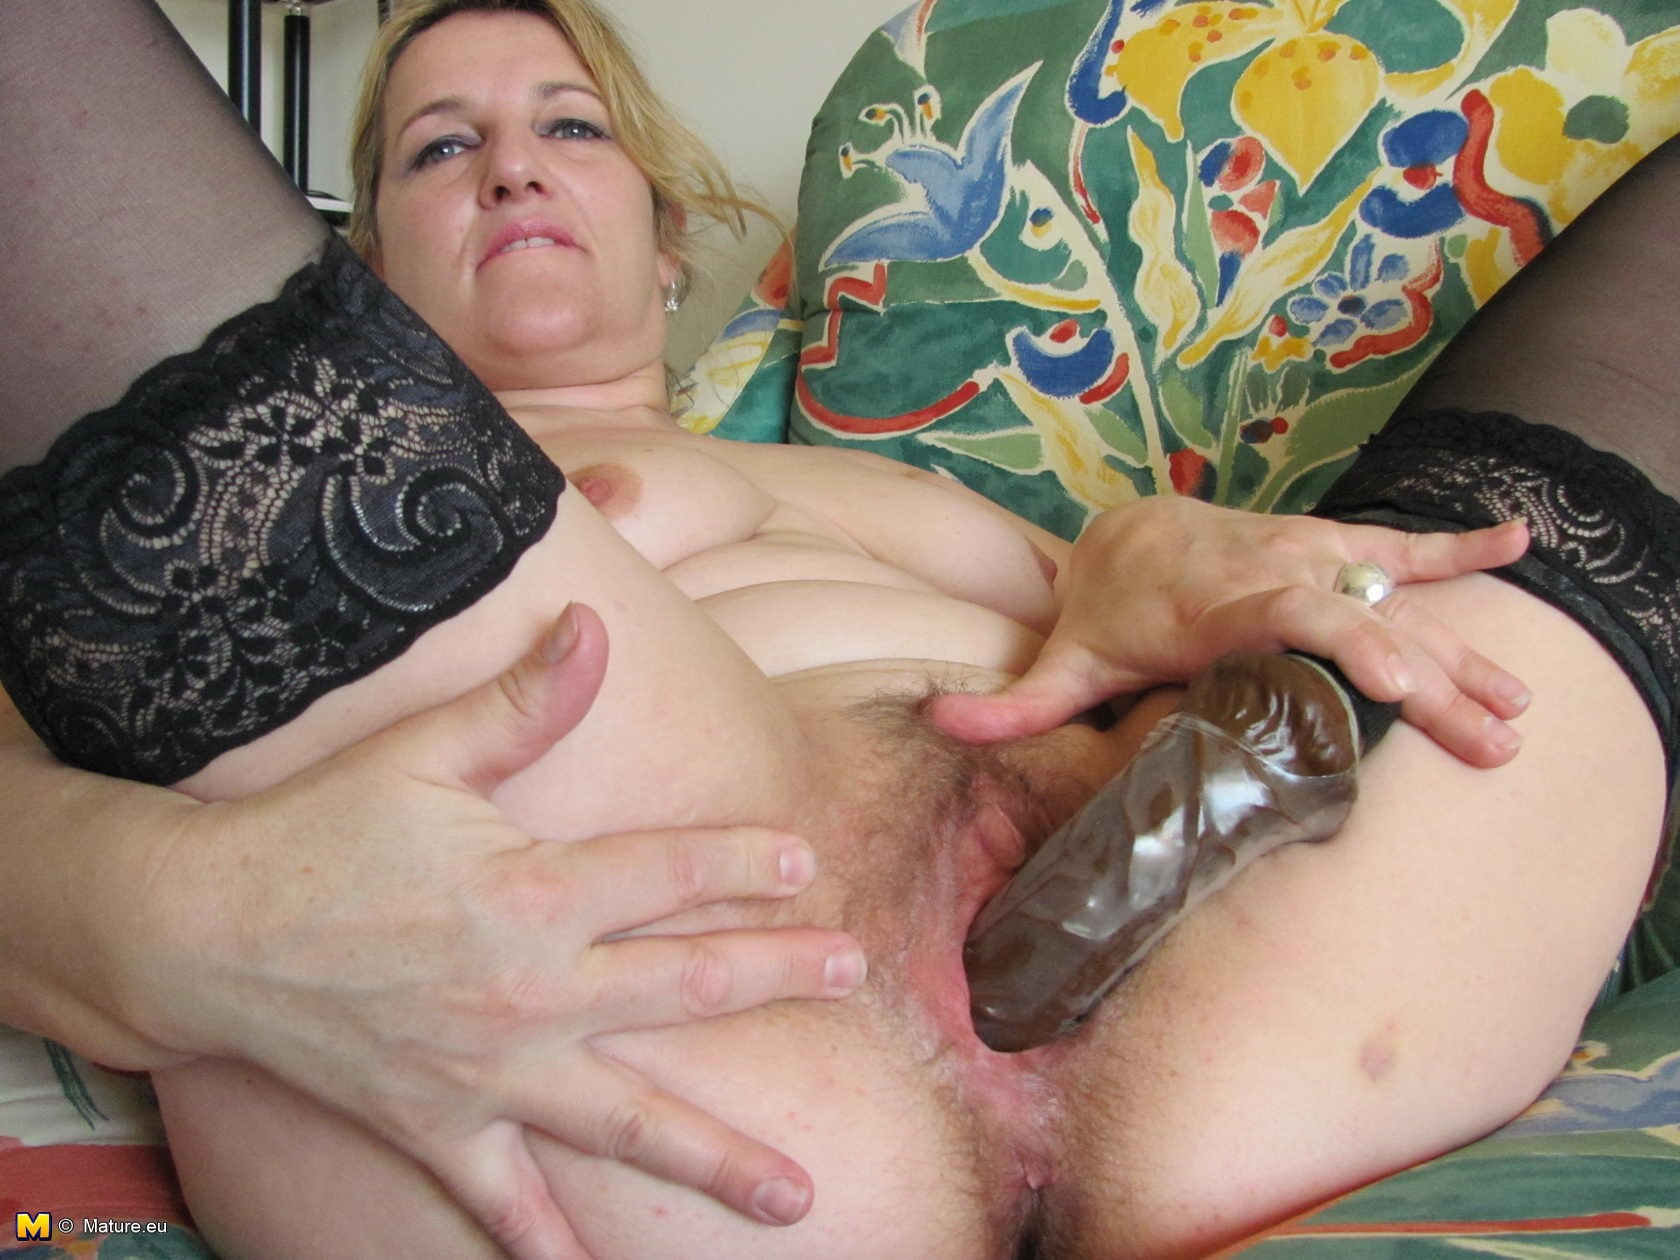 Mature Woman Playing With Her Pussy - YouPorncom